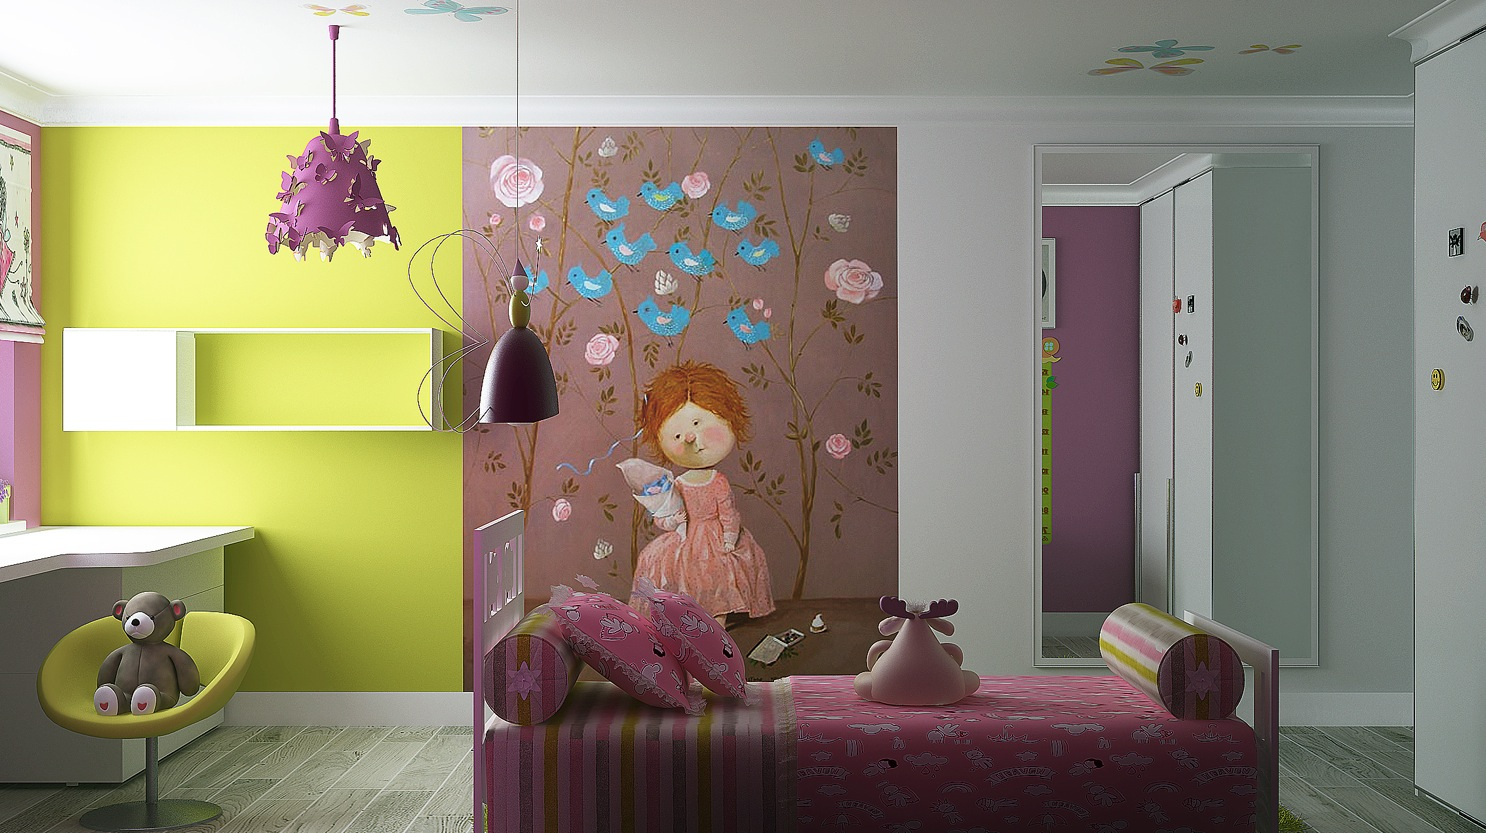 Idee Salle De Bain Original : Via Kate ChelyustnikovaA character themed wall mural adds quirkiness